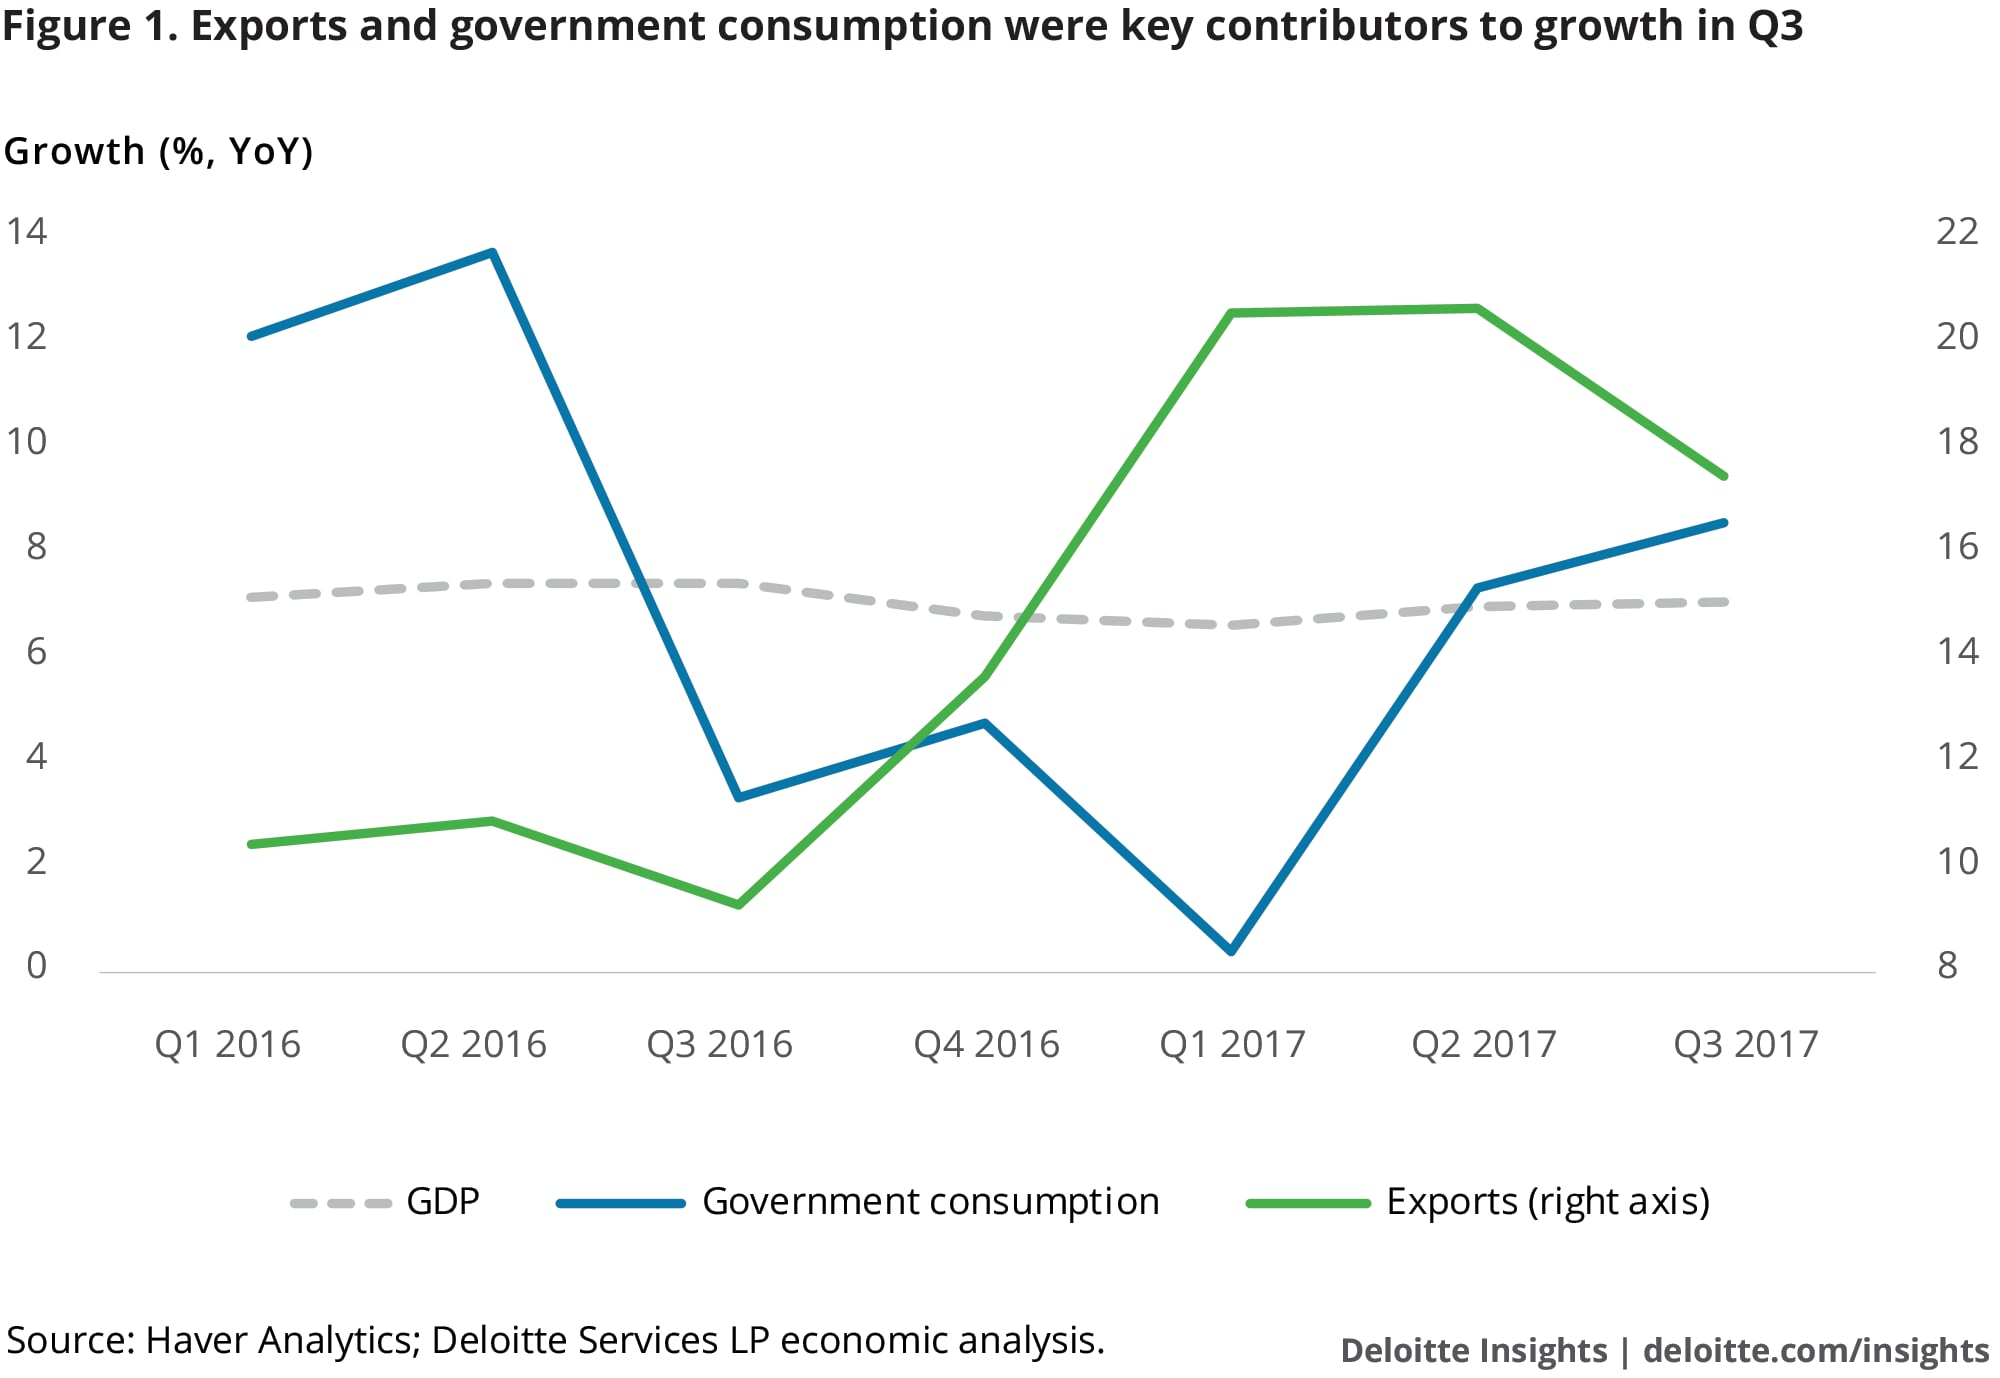 Exports and government consumption were key contributors to growth in Q3